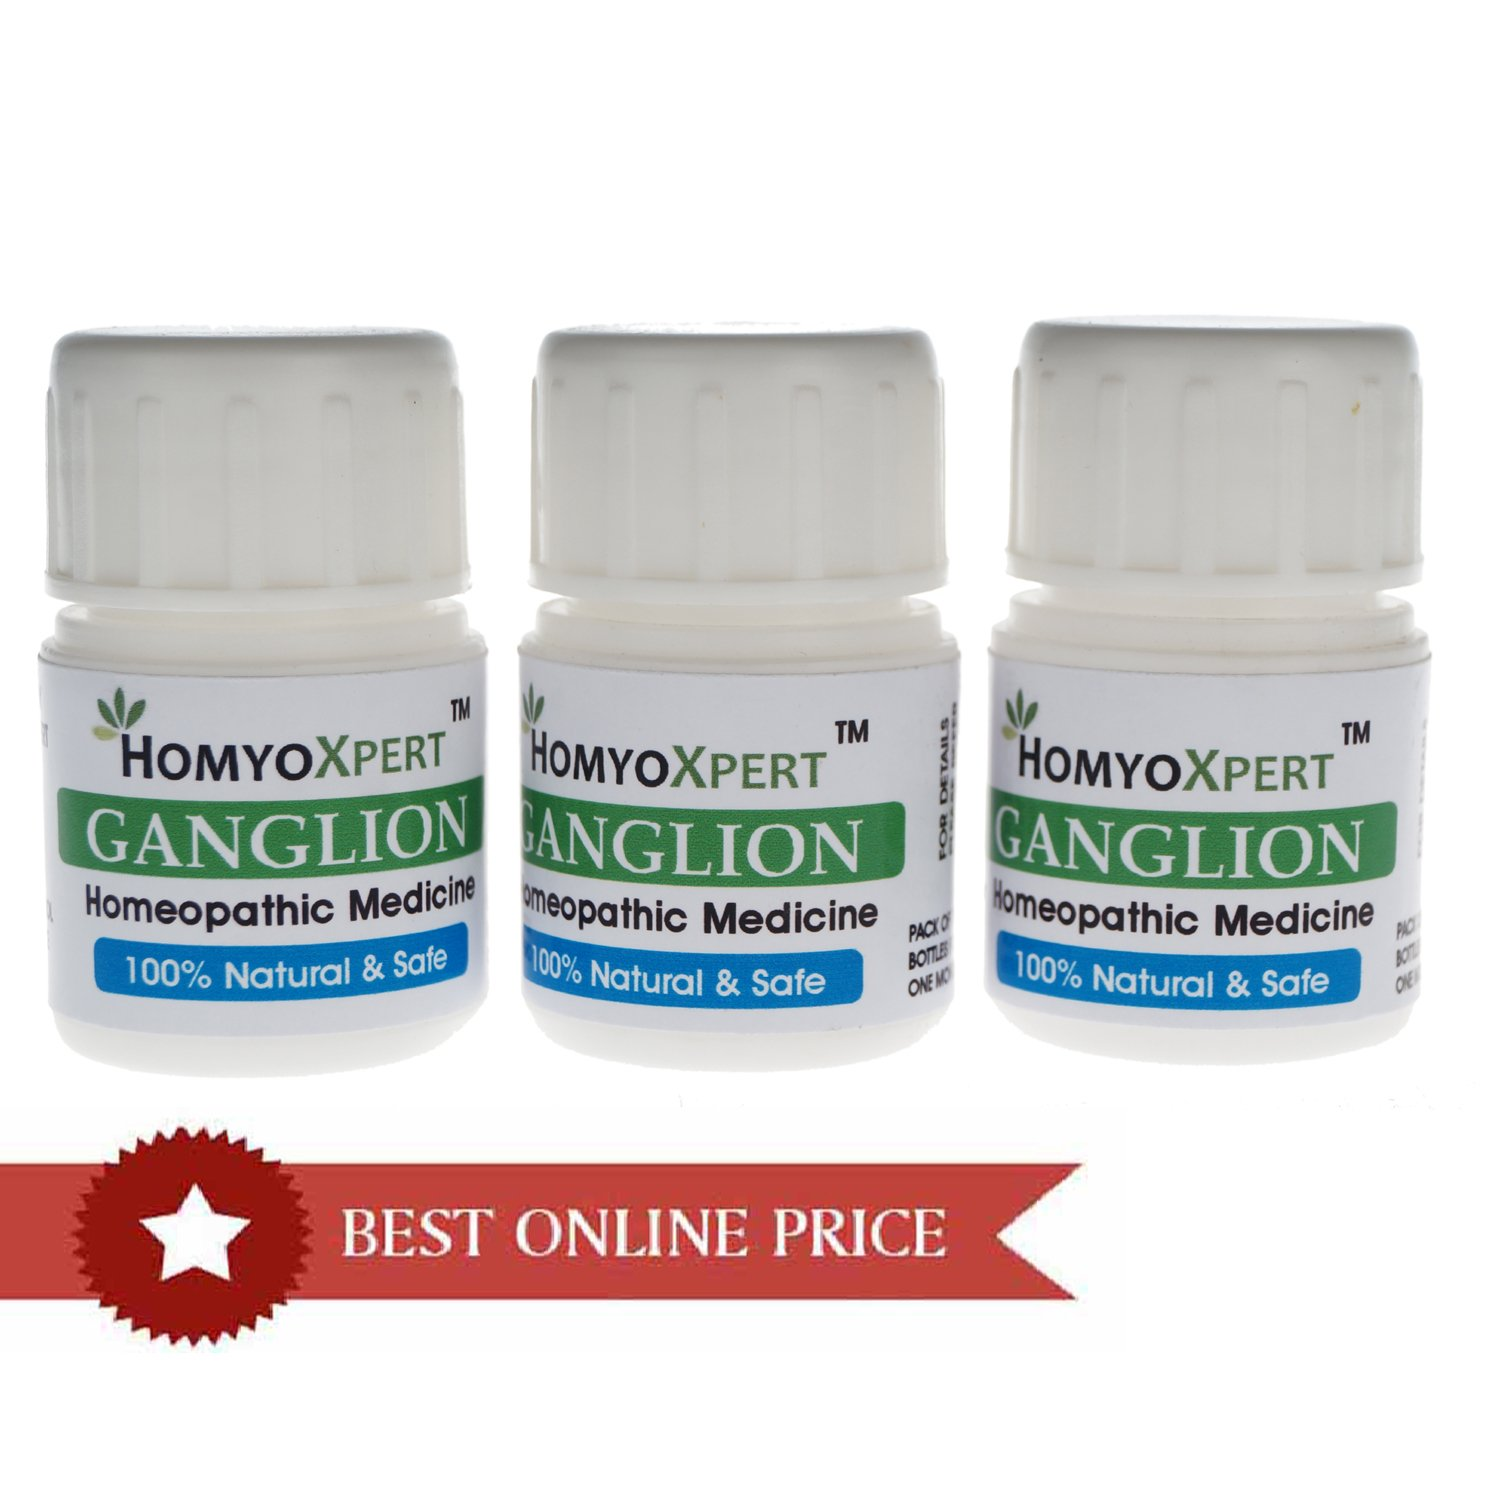 HomyoXpert Ganglion Homeopathic Medicine For One Month by HomyoXpert